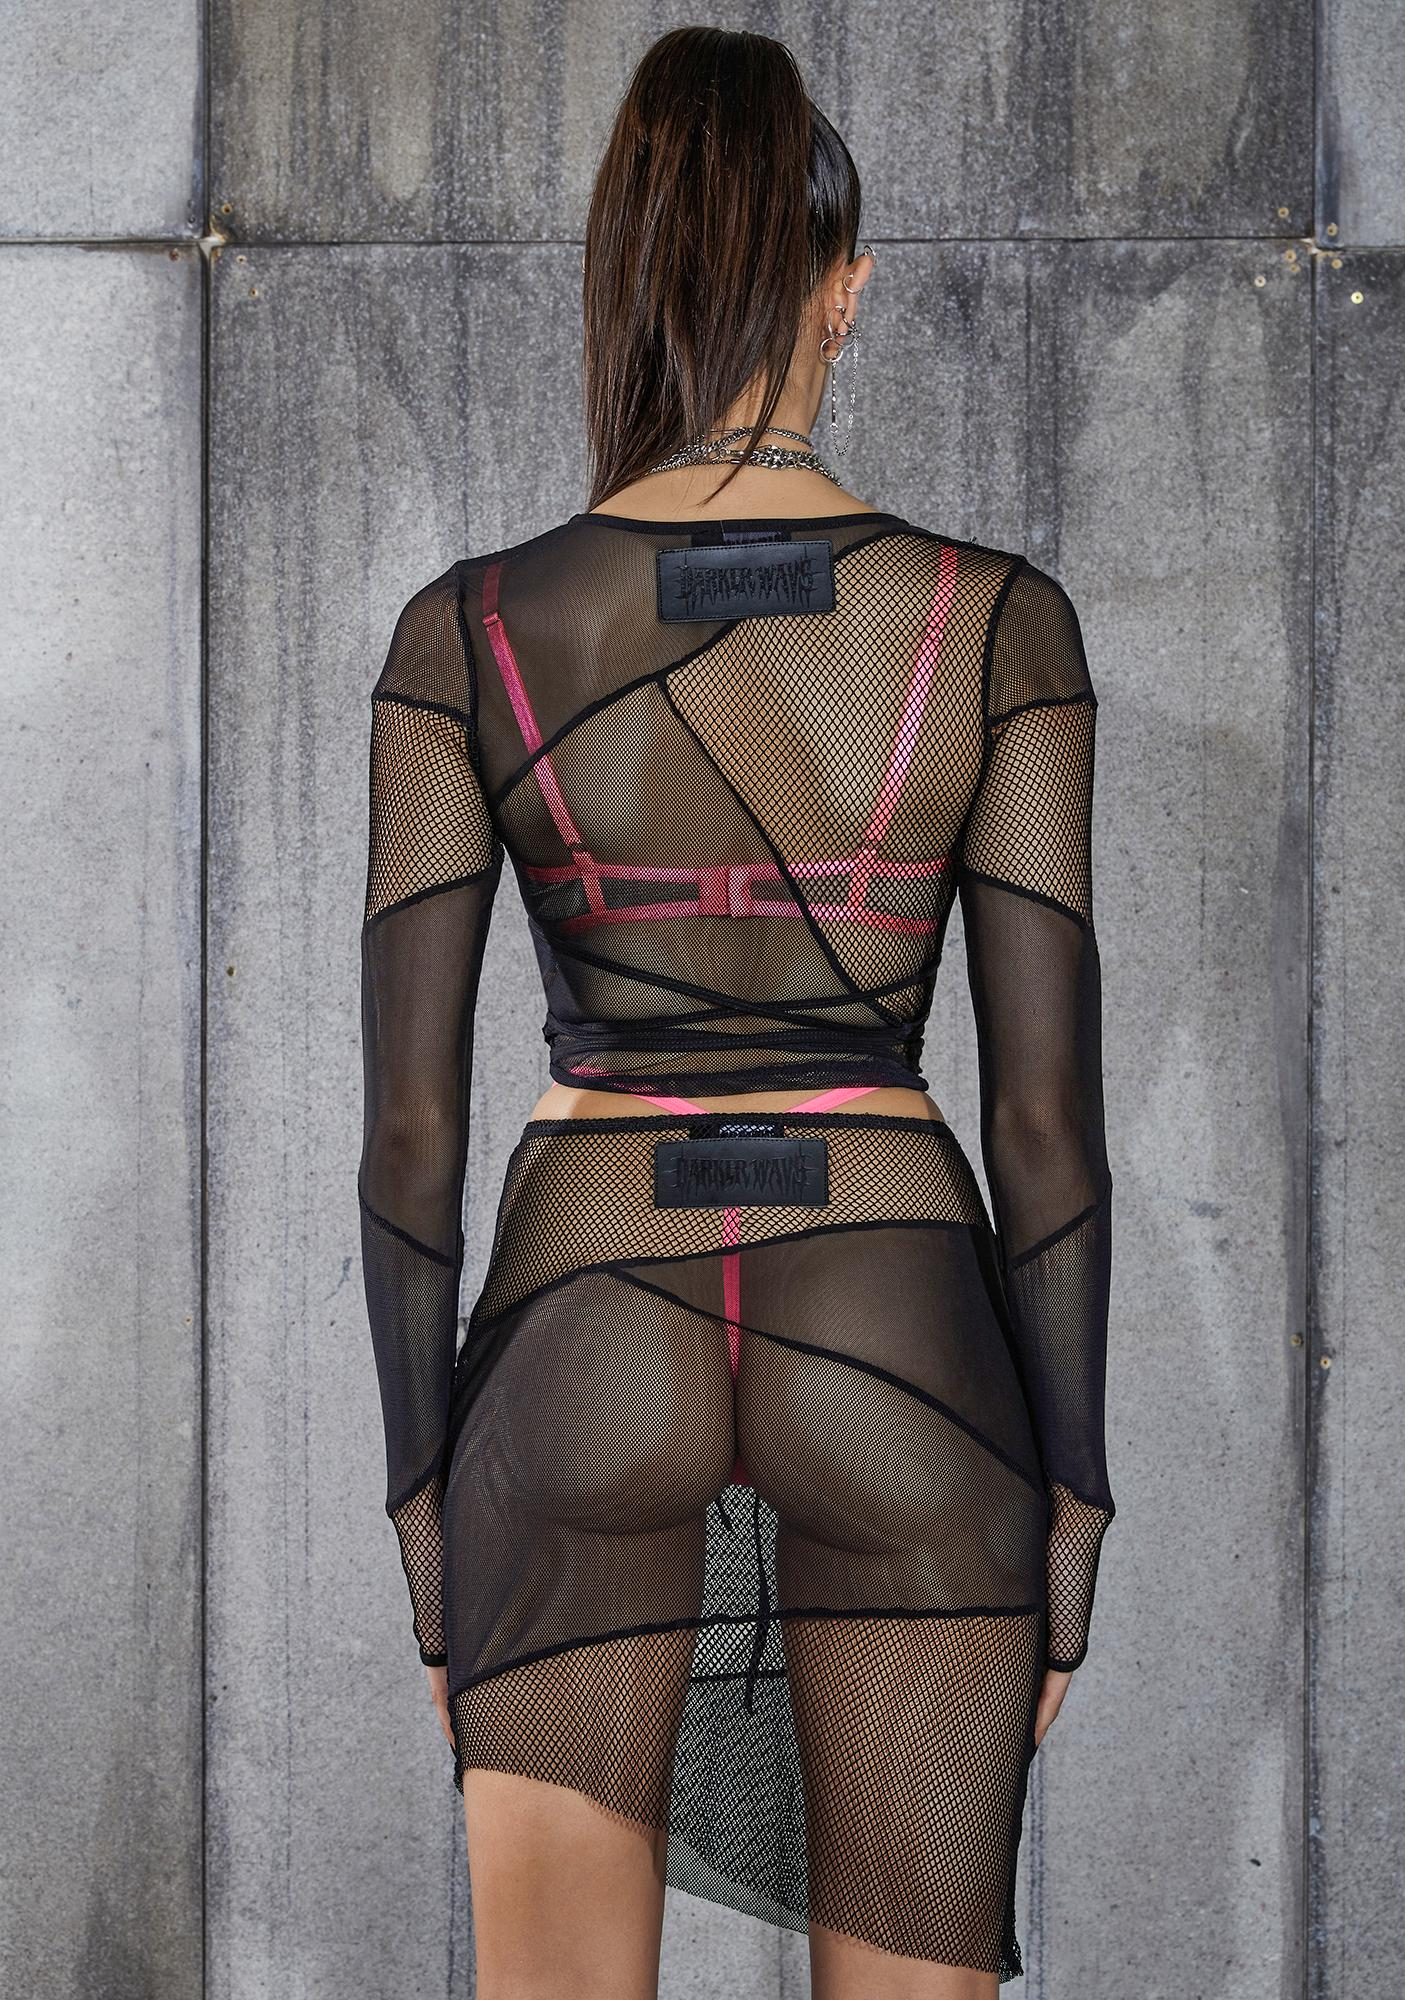 DARKER WAVS Snare Fishnet And Mesh Patchwork Wrap Top